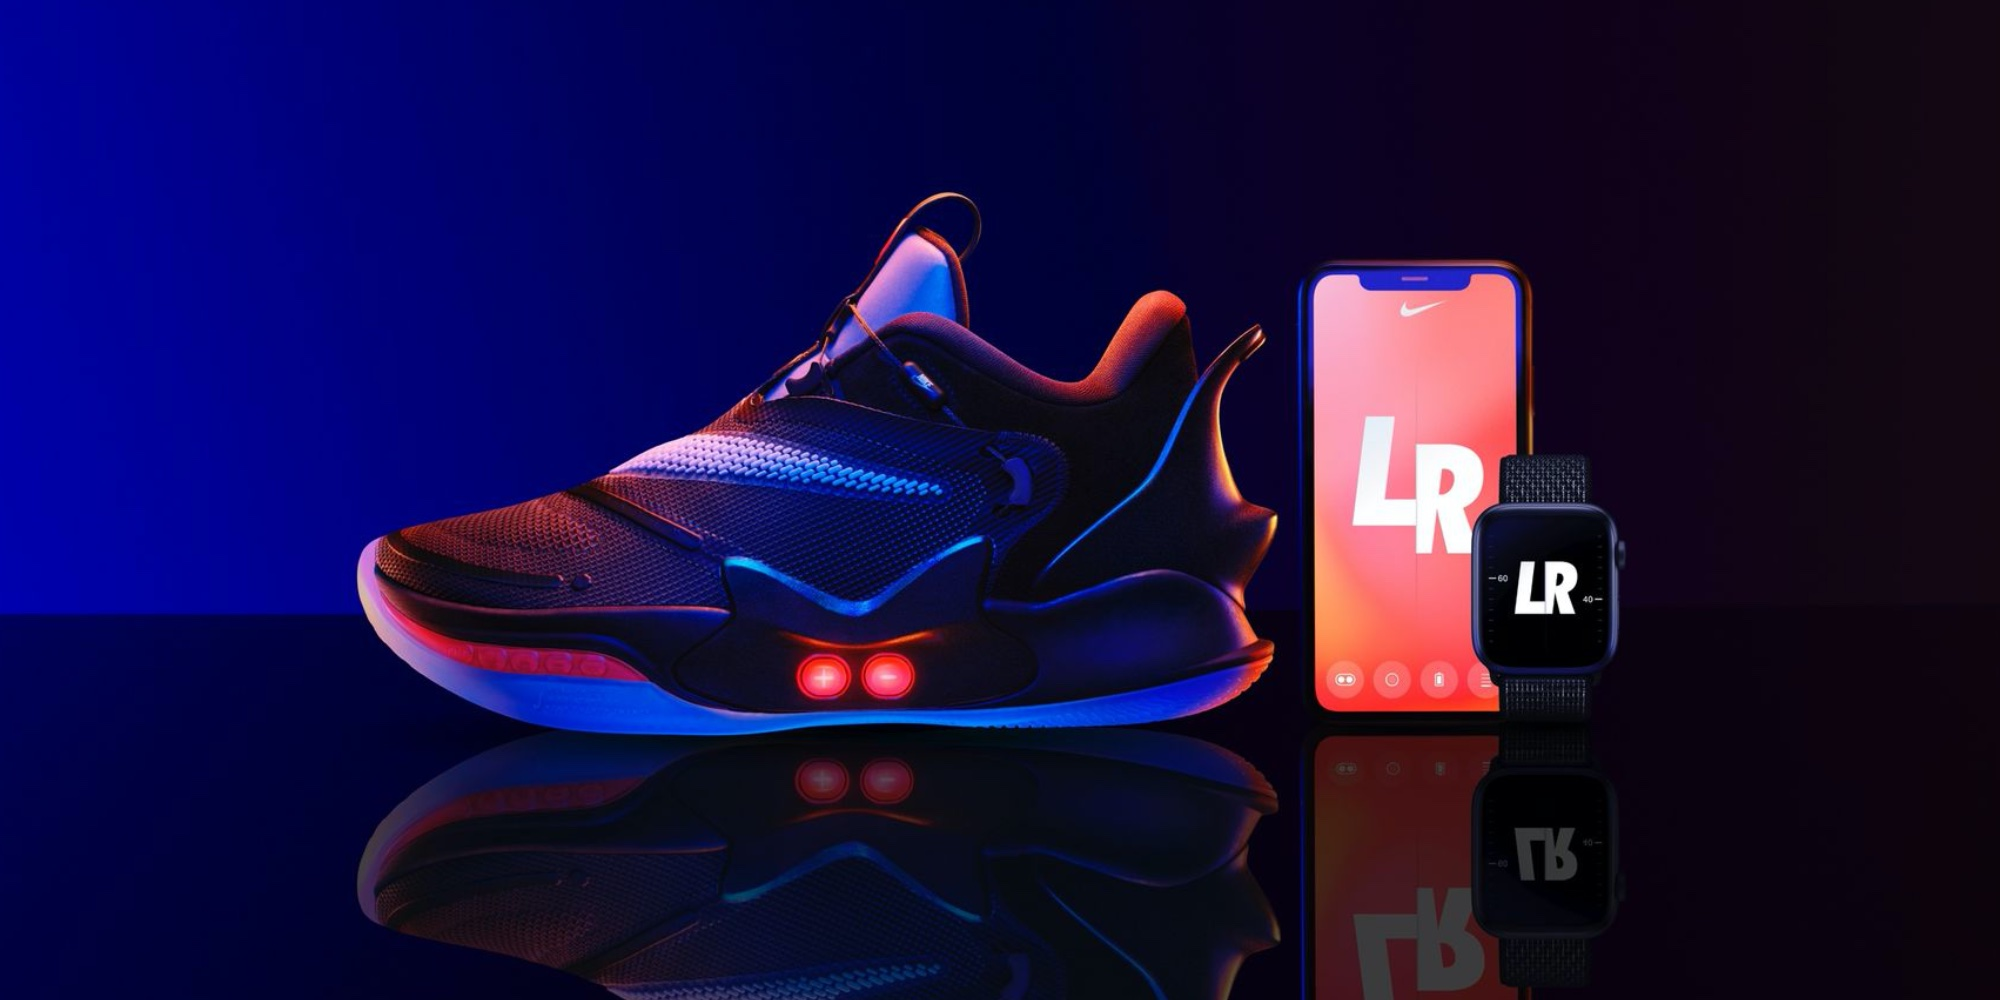 Nike Adapt BB 2.0 bring auto-lacing to new basketball shoes - 9to5Toys